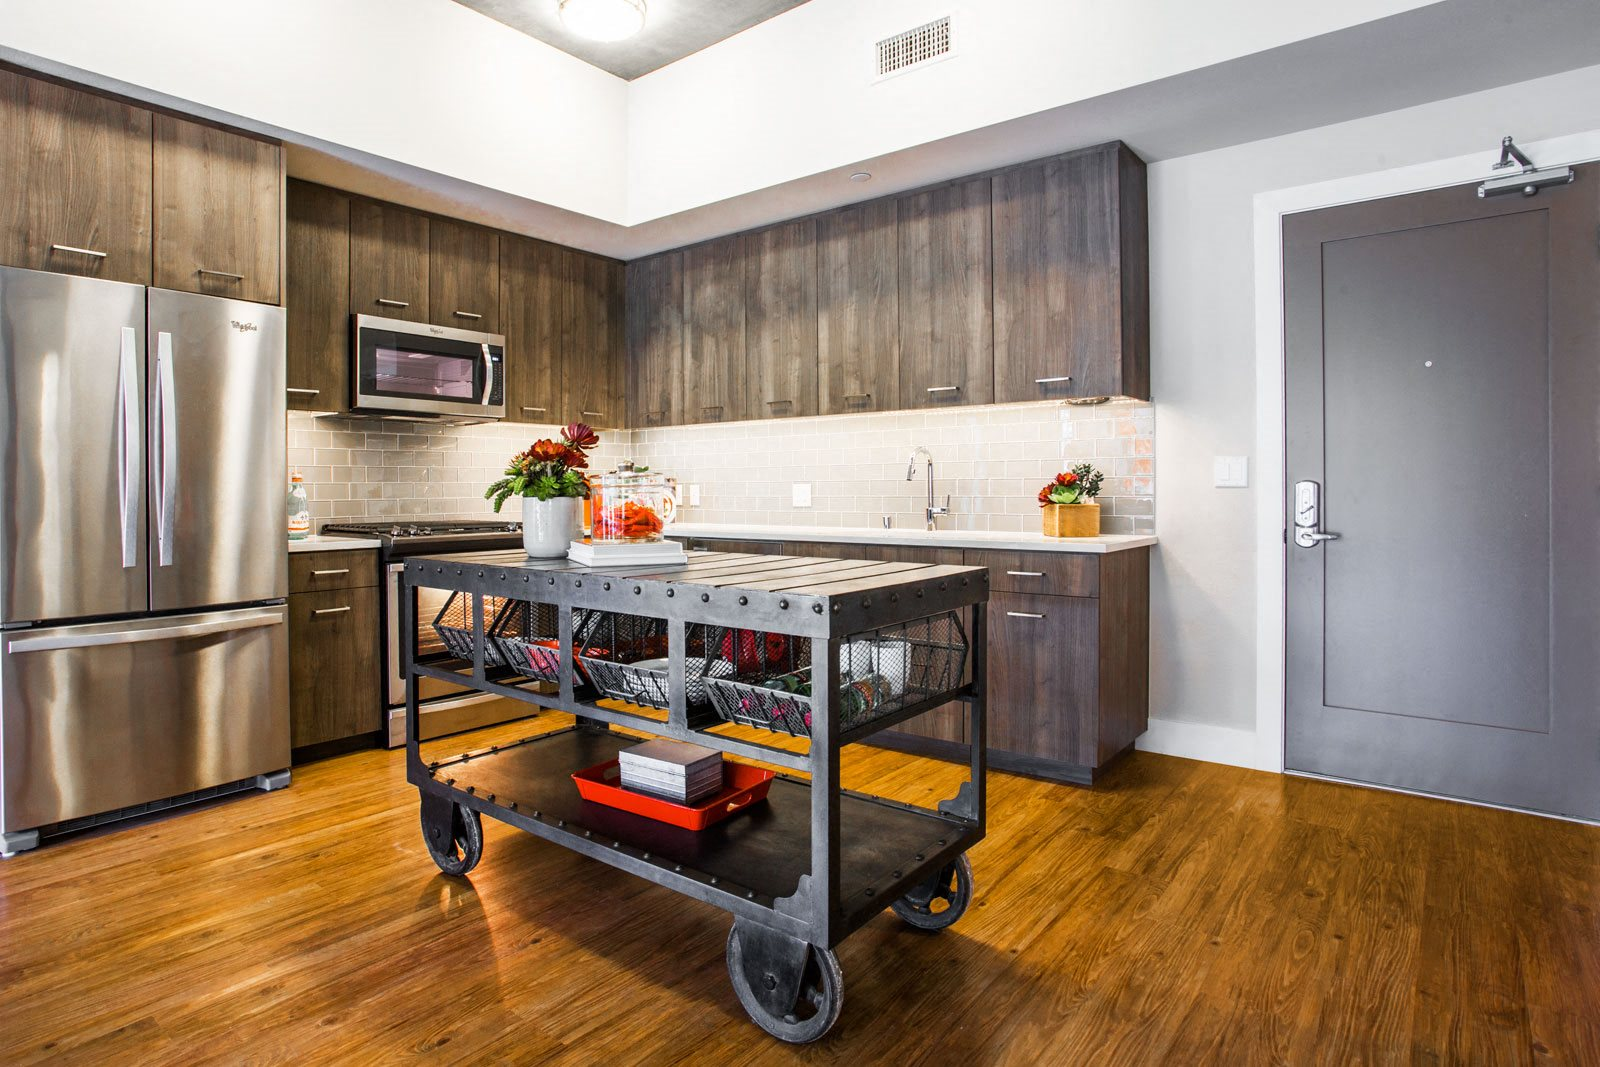 Upscale Stainless Steel Appliances at The Marston by Windsor, 825 Marshall Street, Redwood City